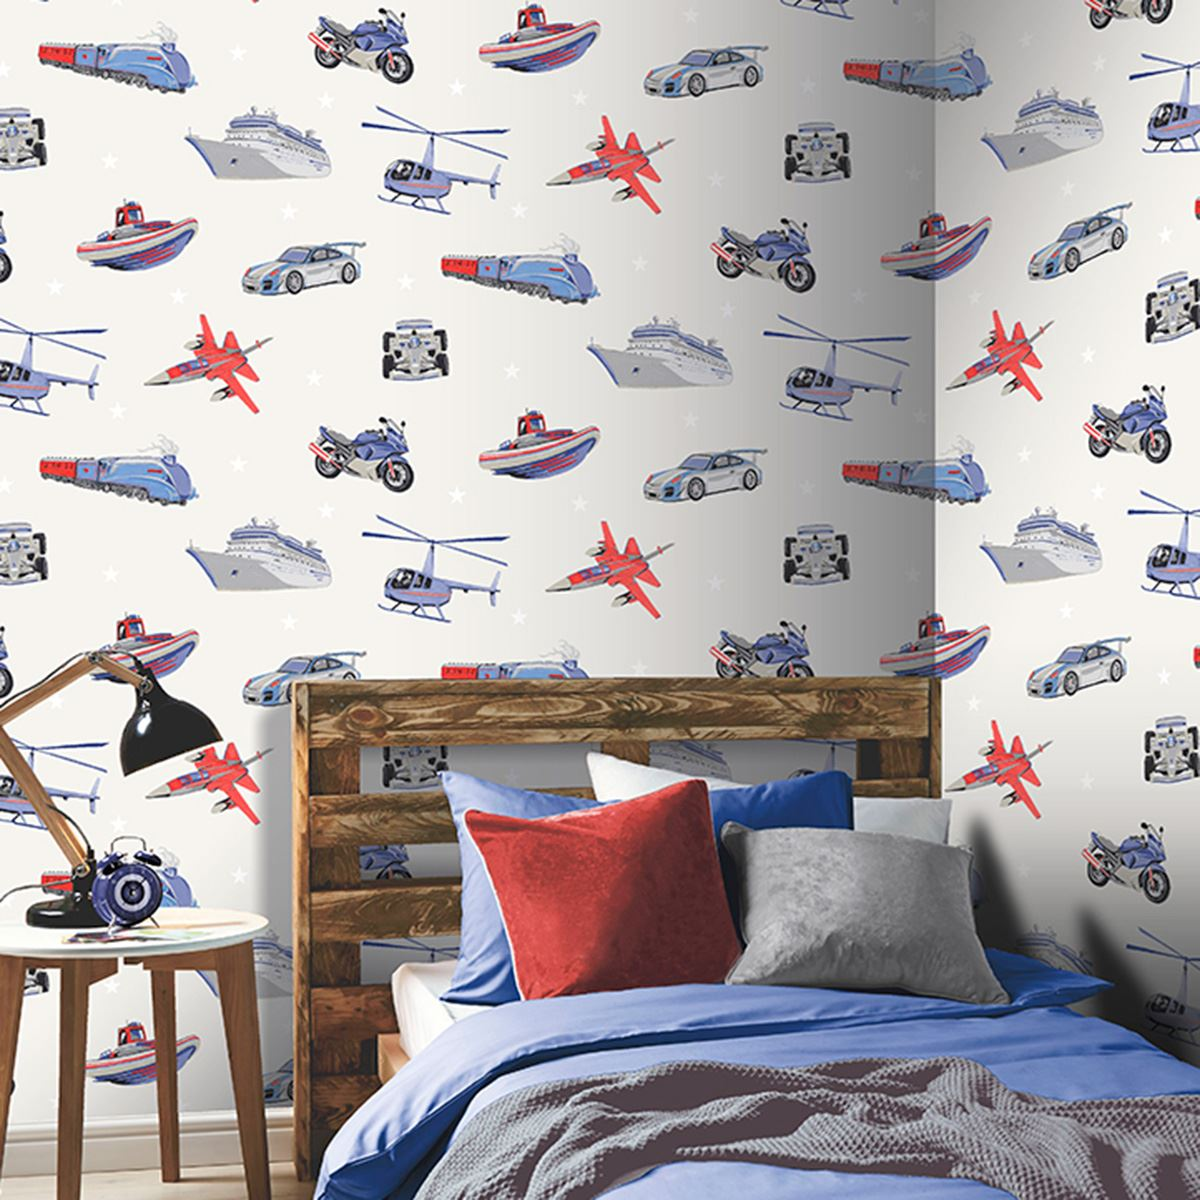 Diy Boy Bedroom Ideas Bedroom Wallpaper Designs Bedroom Sets Decorating Ideas Brown Black And White Bedroom: ZOOM AWAY VEHICLES WALLPAPER ARTHOUSE CARS MOTORBIKE BOYS